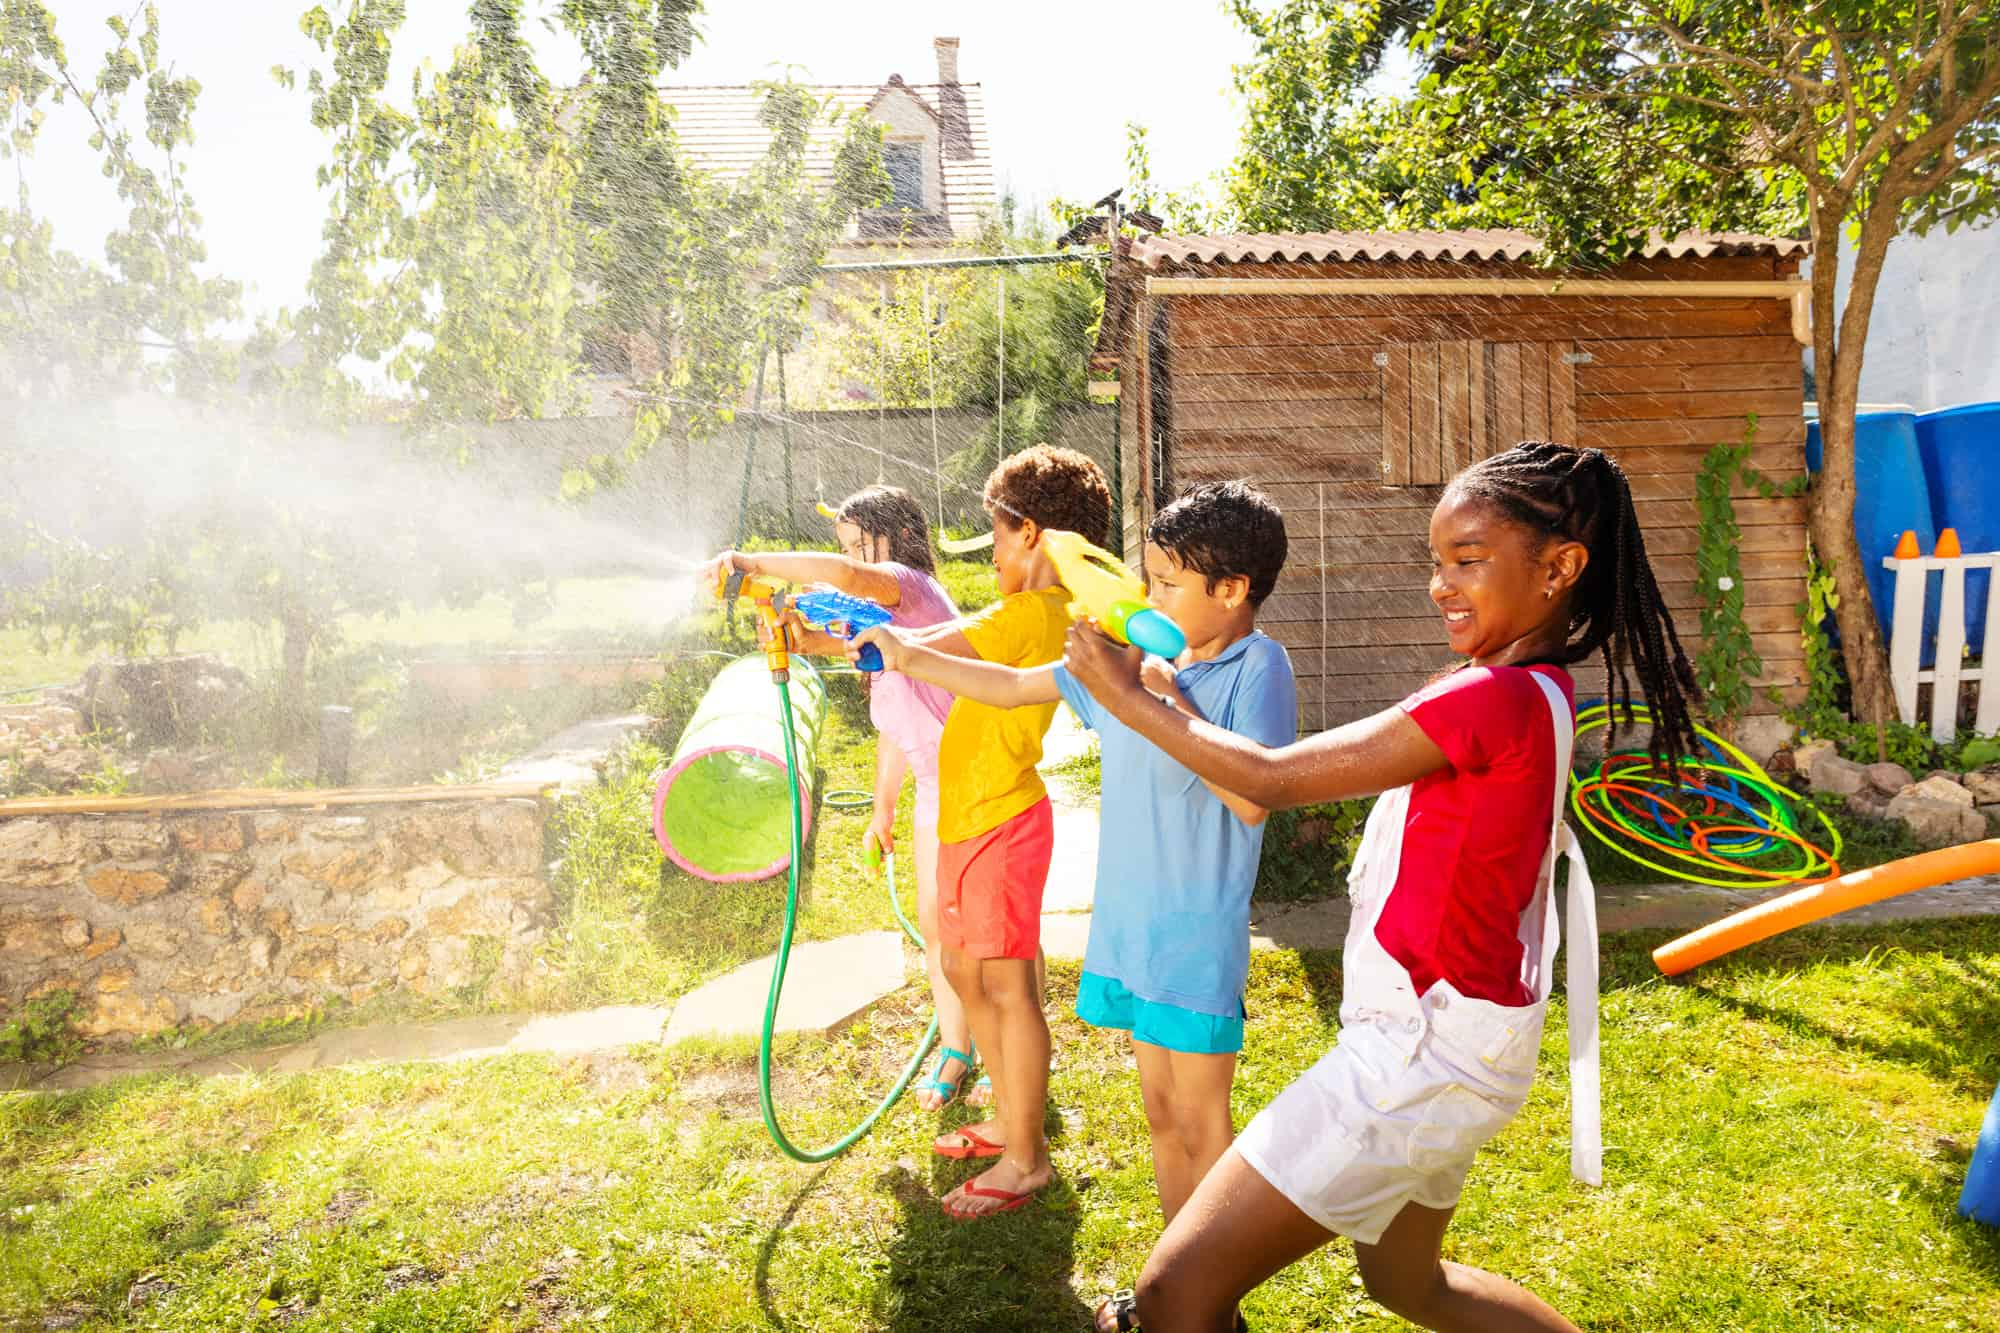 four kids with water guns playing in backyard activity for kids, outdoors